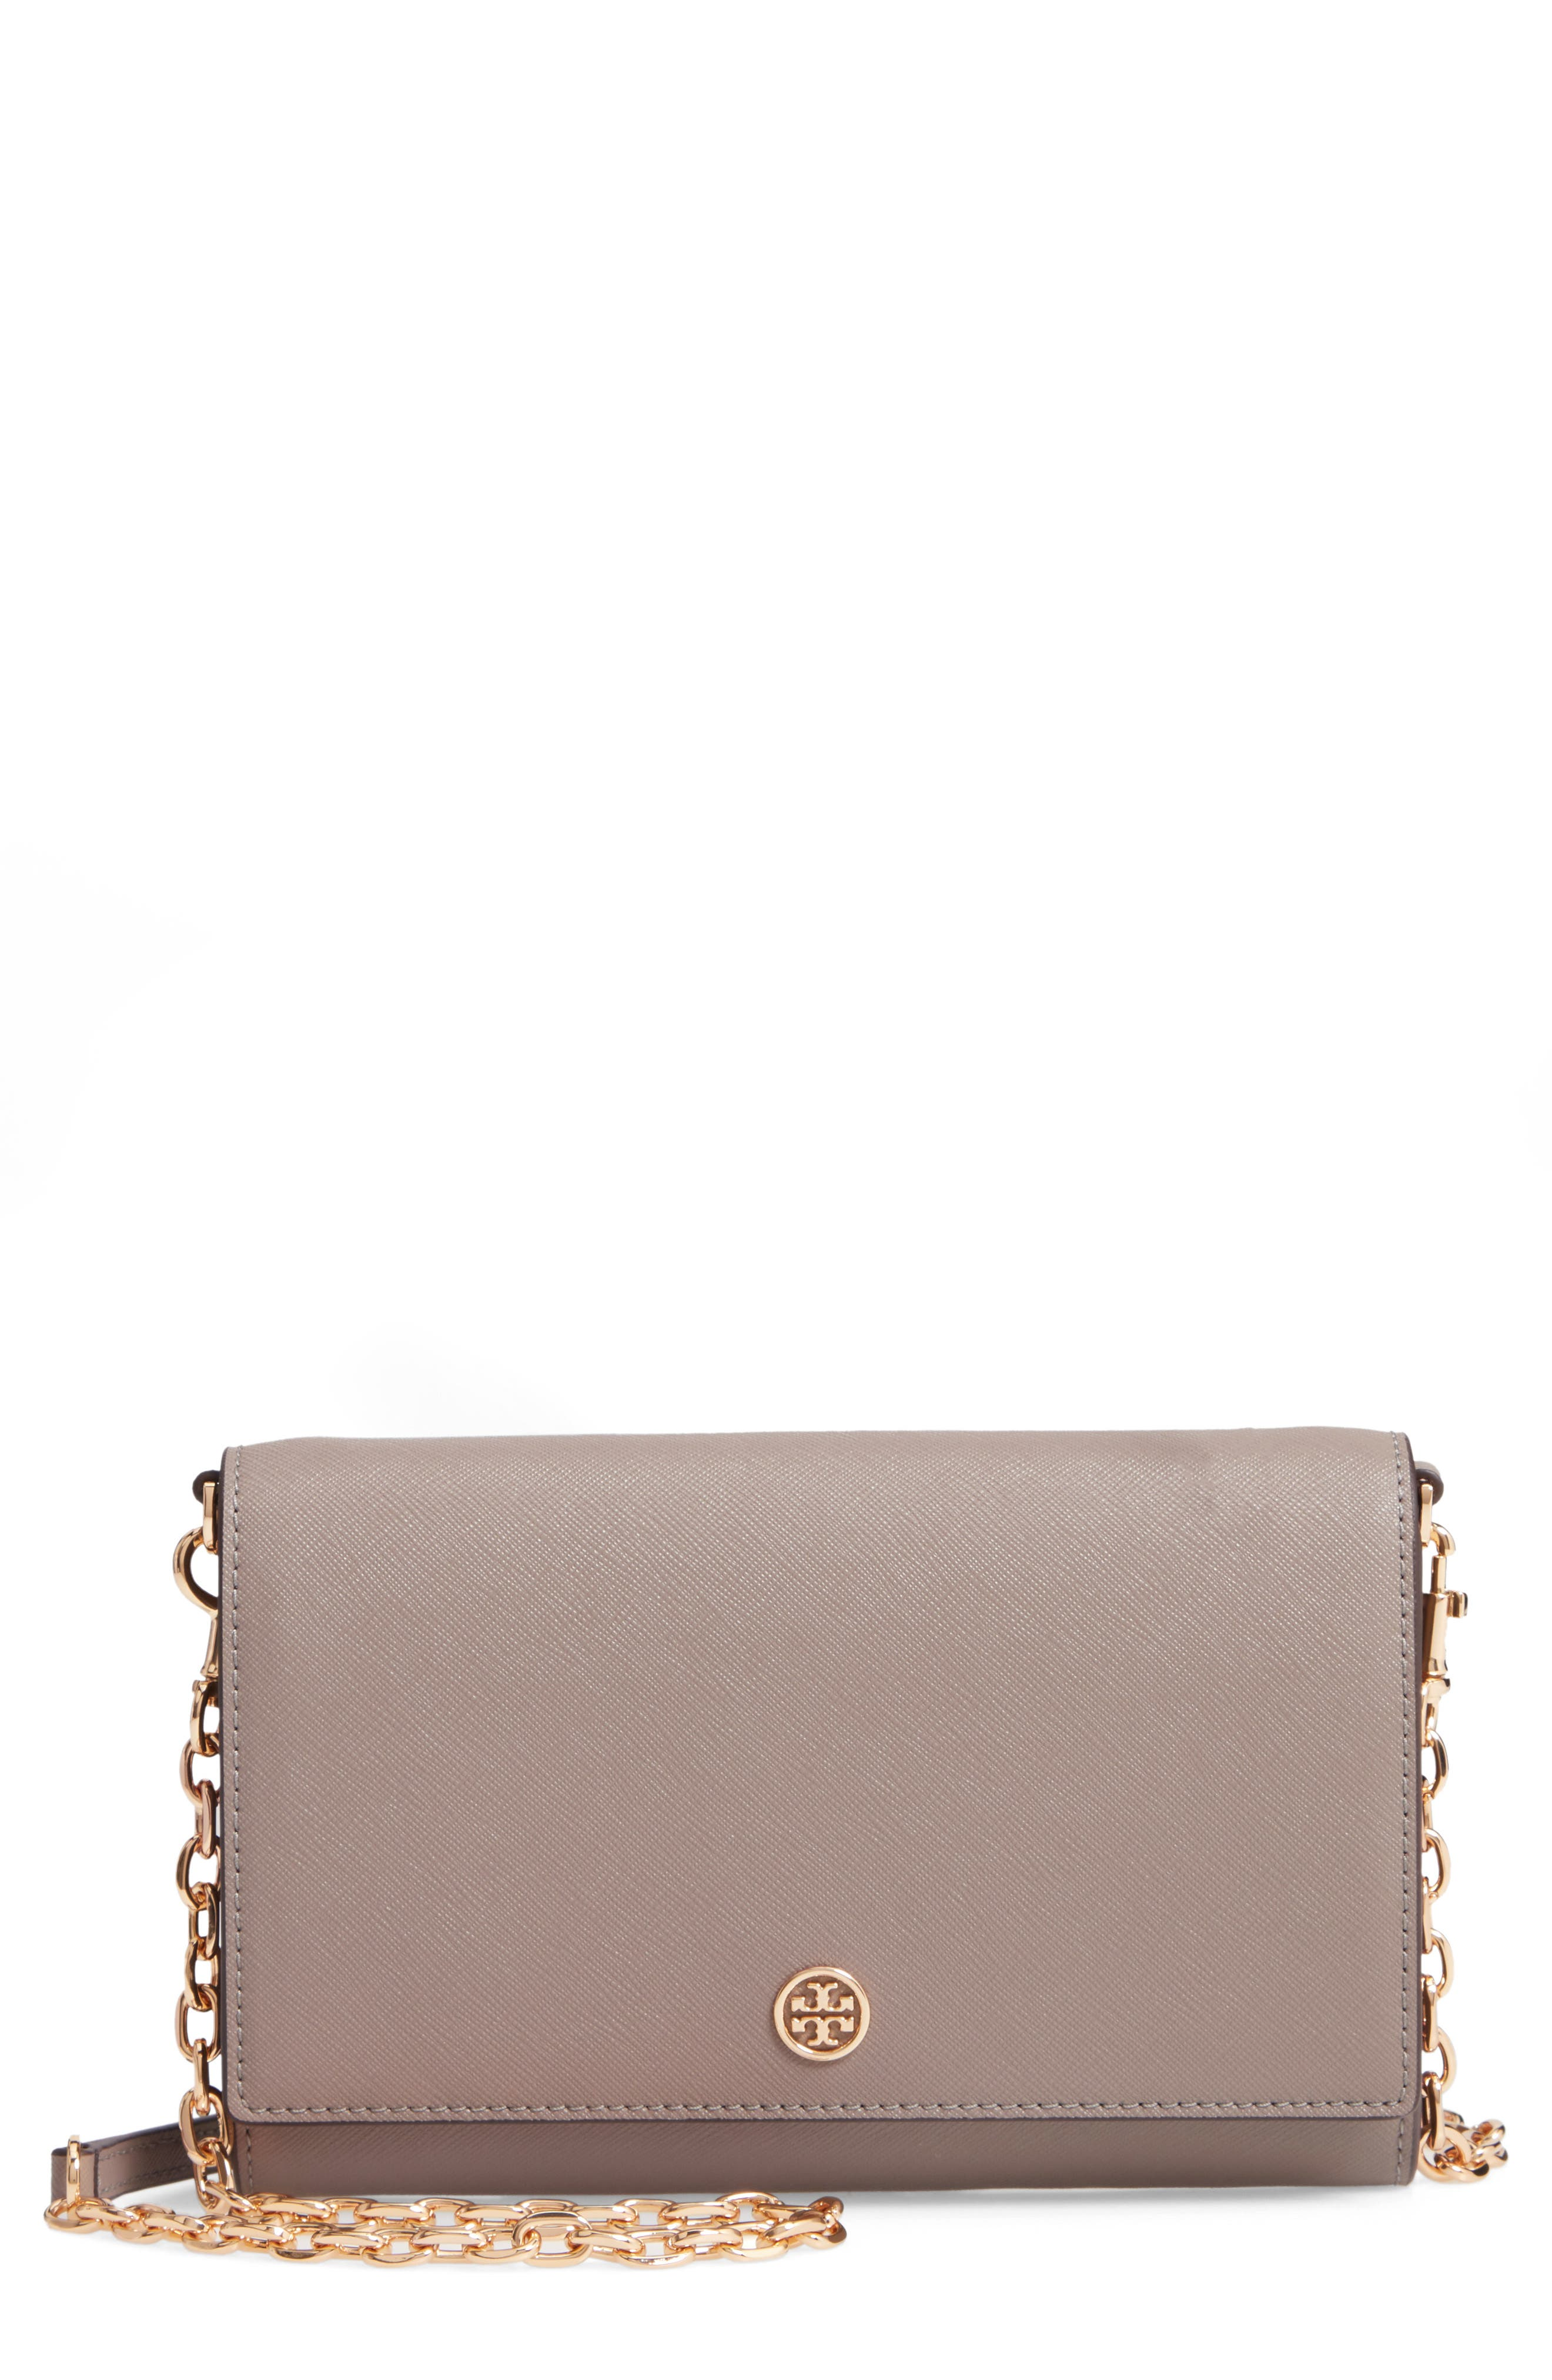 TORY BURCH Robinson Leather Wallet on a Chain, Main, color, GRAY HERON